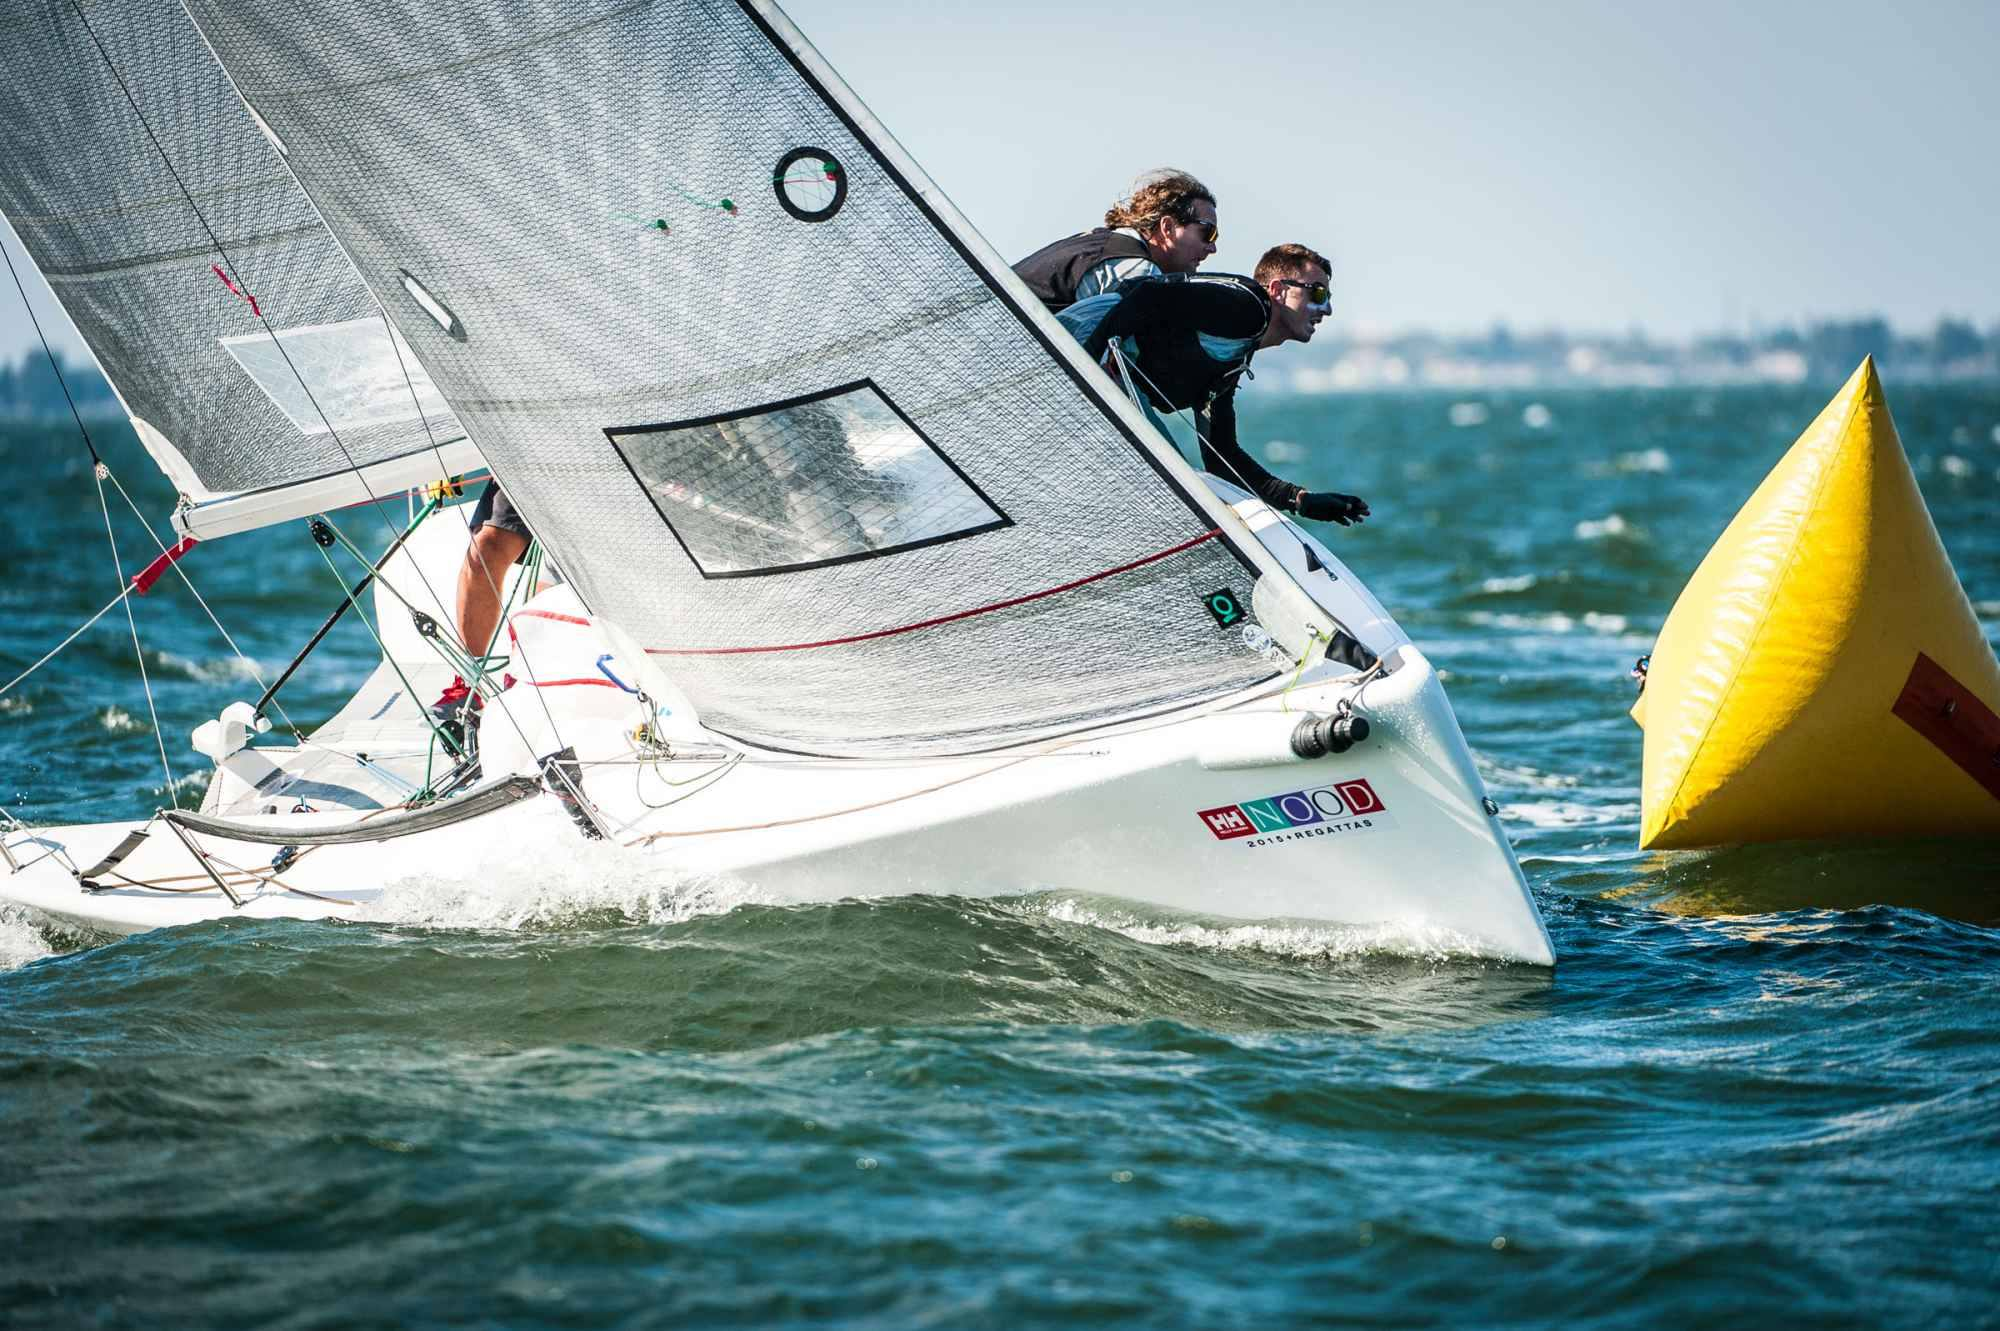 Melges 24 Zingara CAN629 - Richard Reid - (c) NOOD Regatta